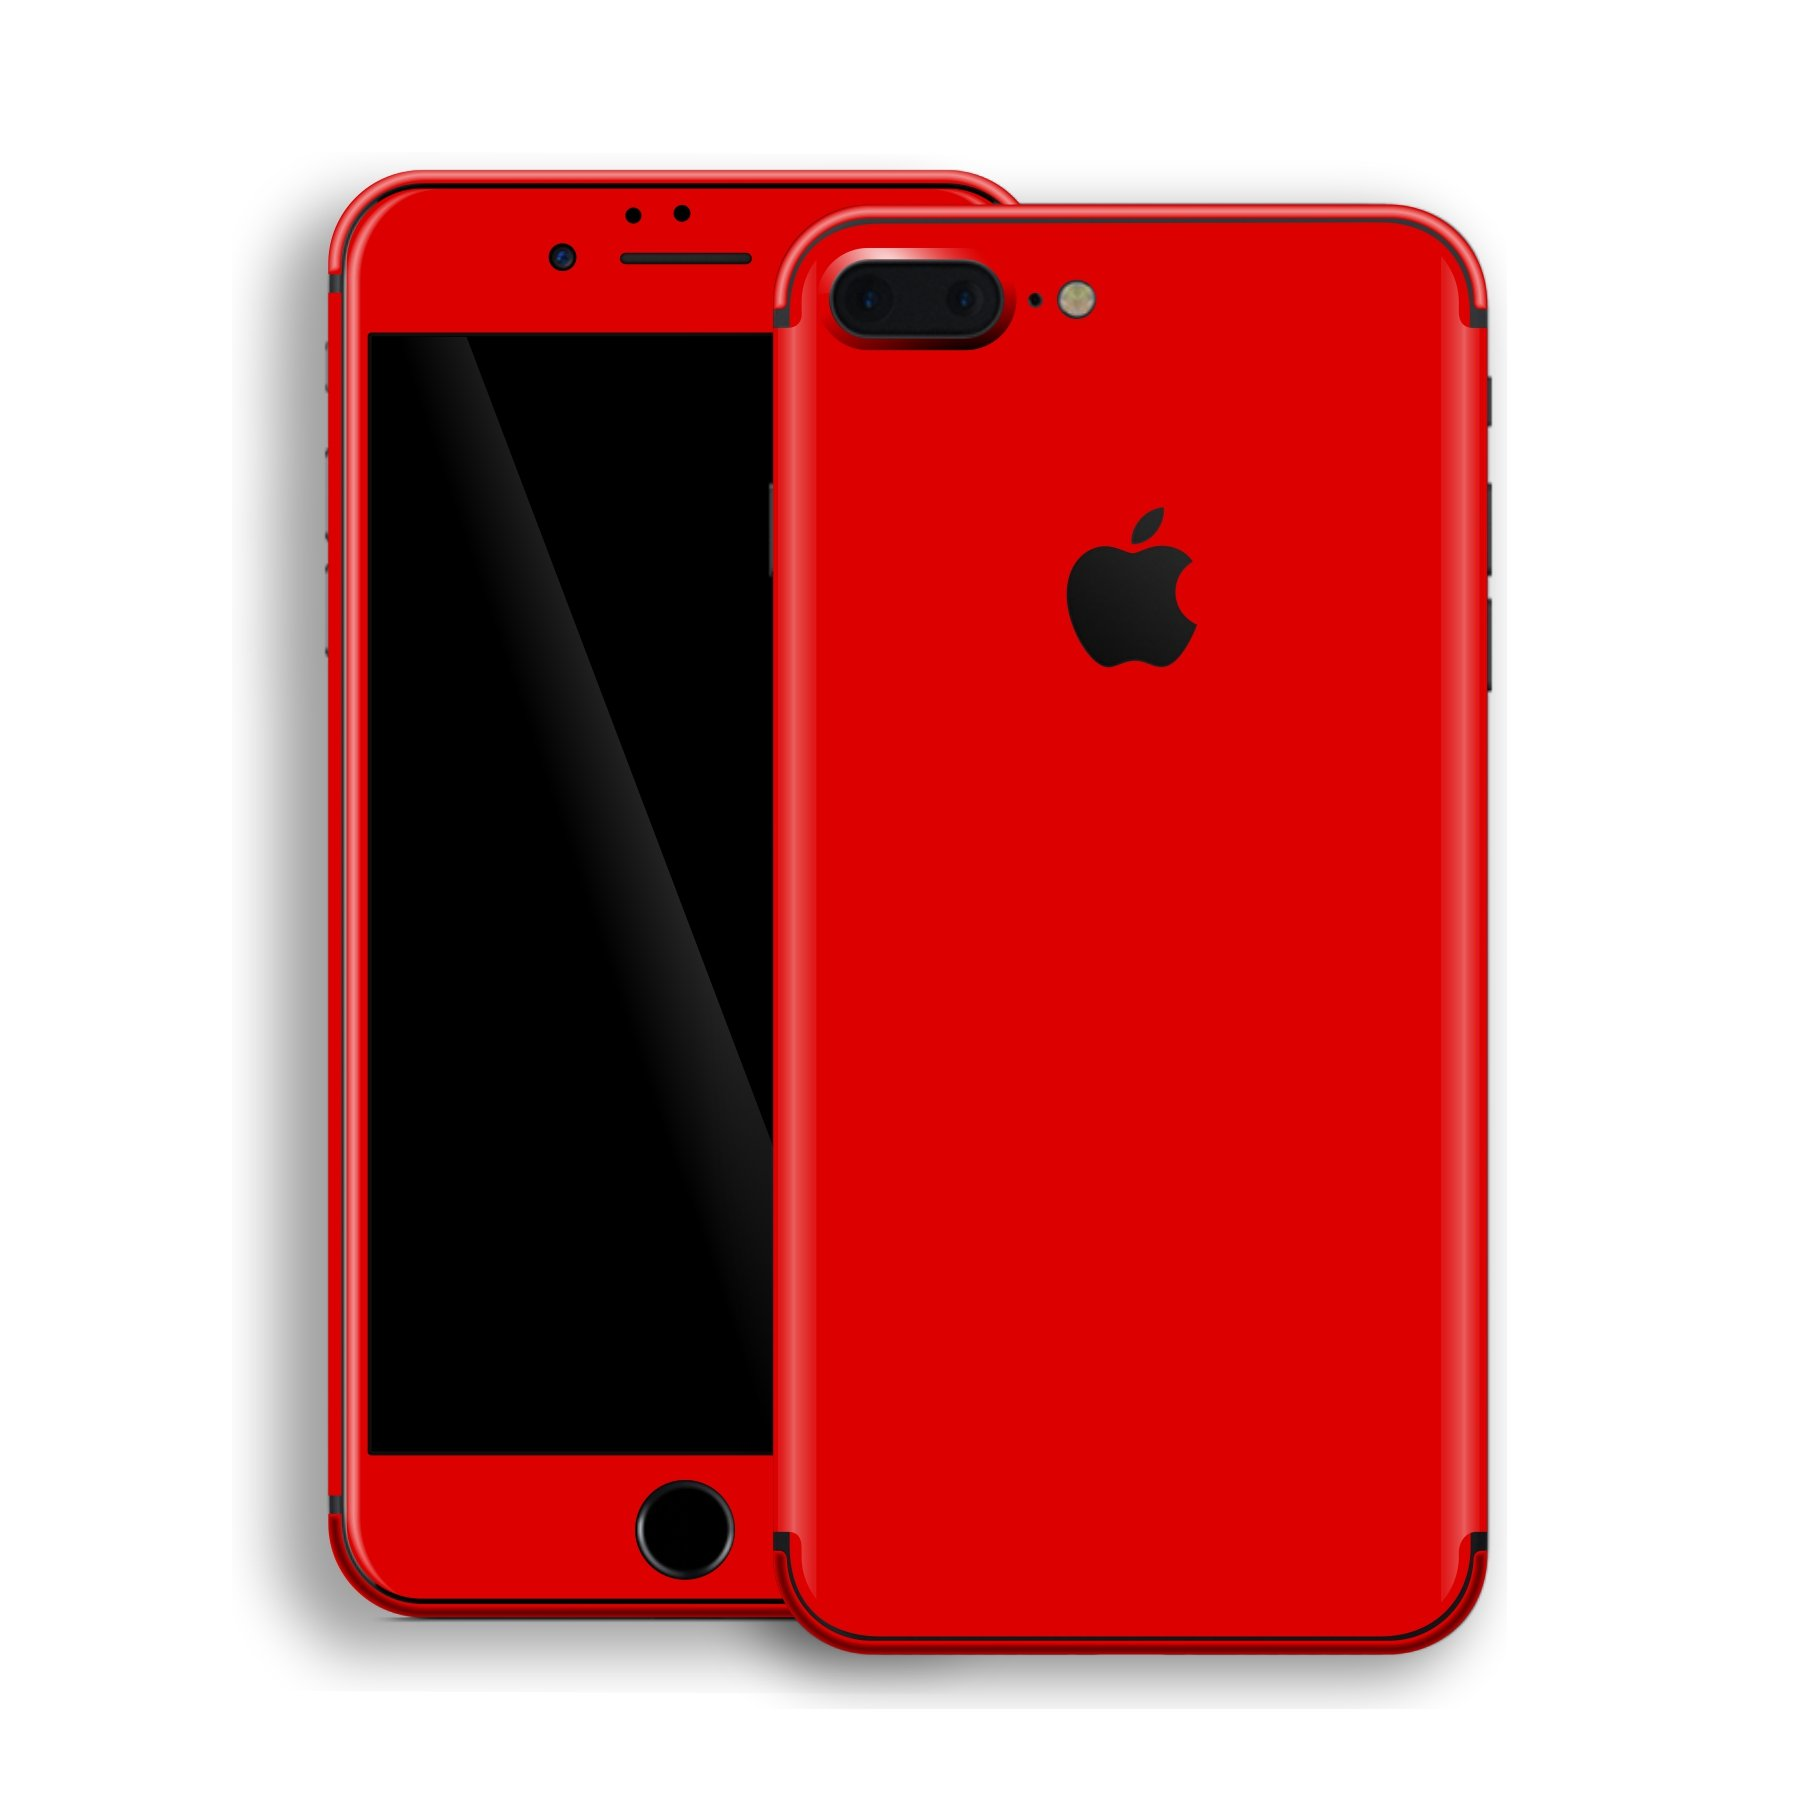 wholesale dealer 3ef2b 6e259 iPhone 8 PLUS GLOSSY Bright Red Skin